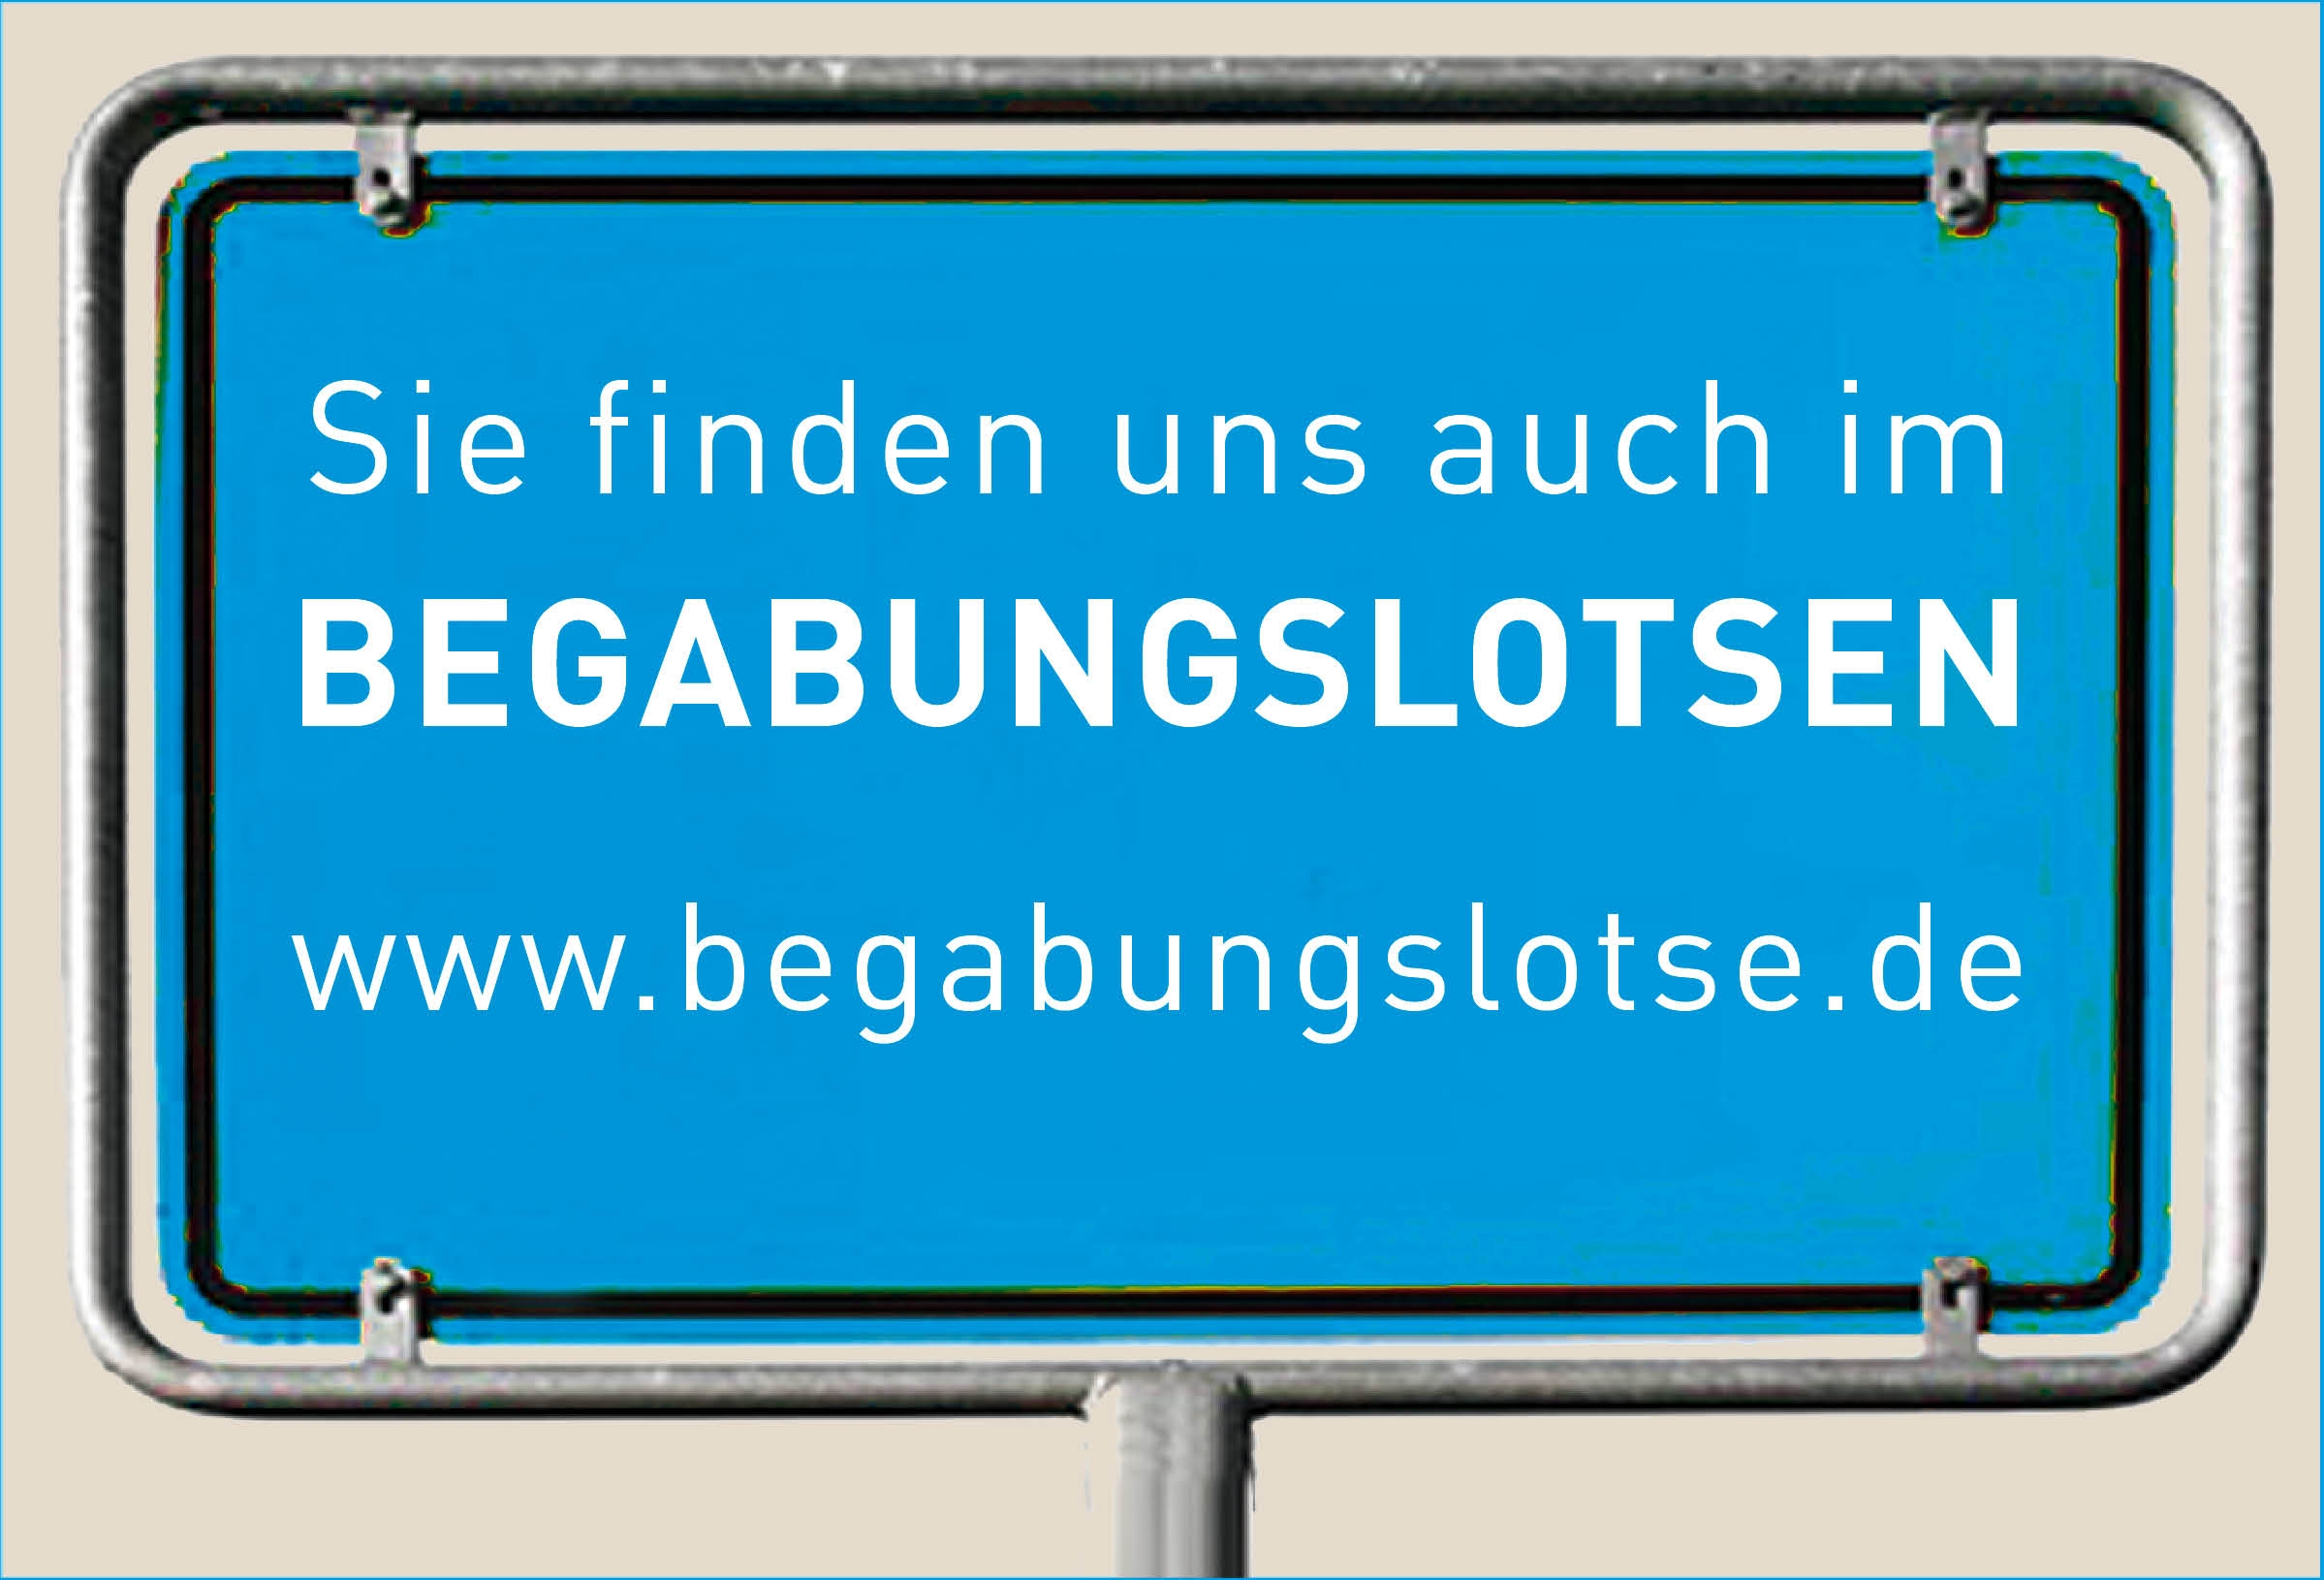 https://querwelteinumweltbildung.files.wordpress.com/2014/01/begabungslotse-signet-web1.jpg